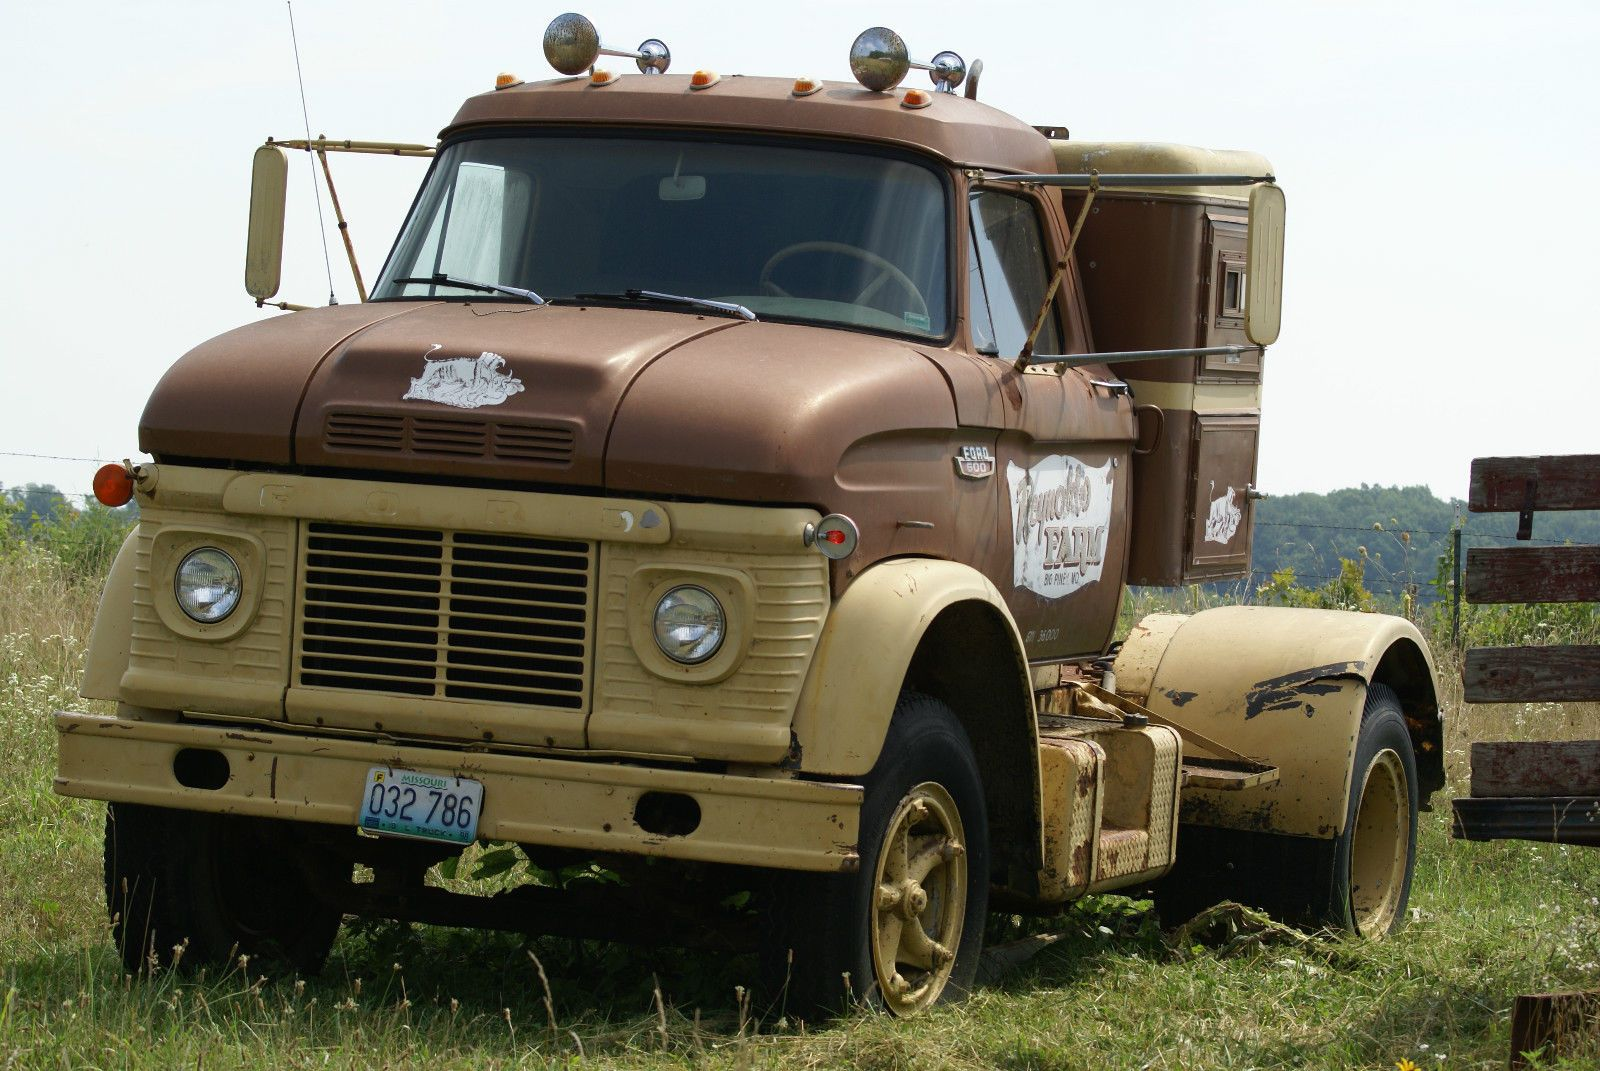 This Old Ford N-600 Truck Needs A New Home And A New Paint Job Stat